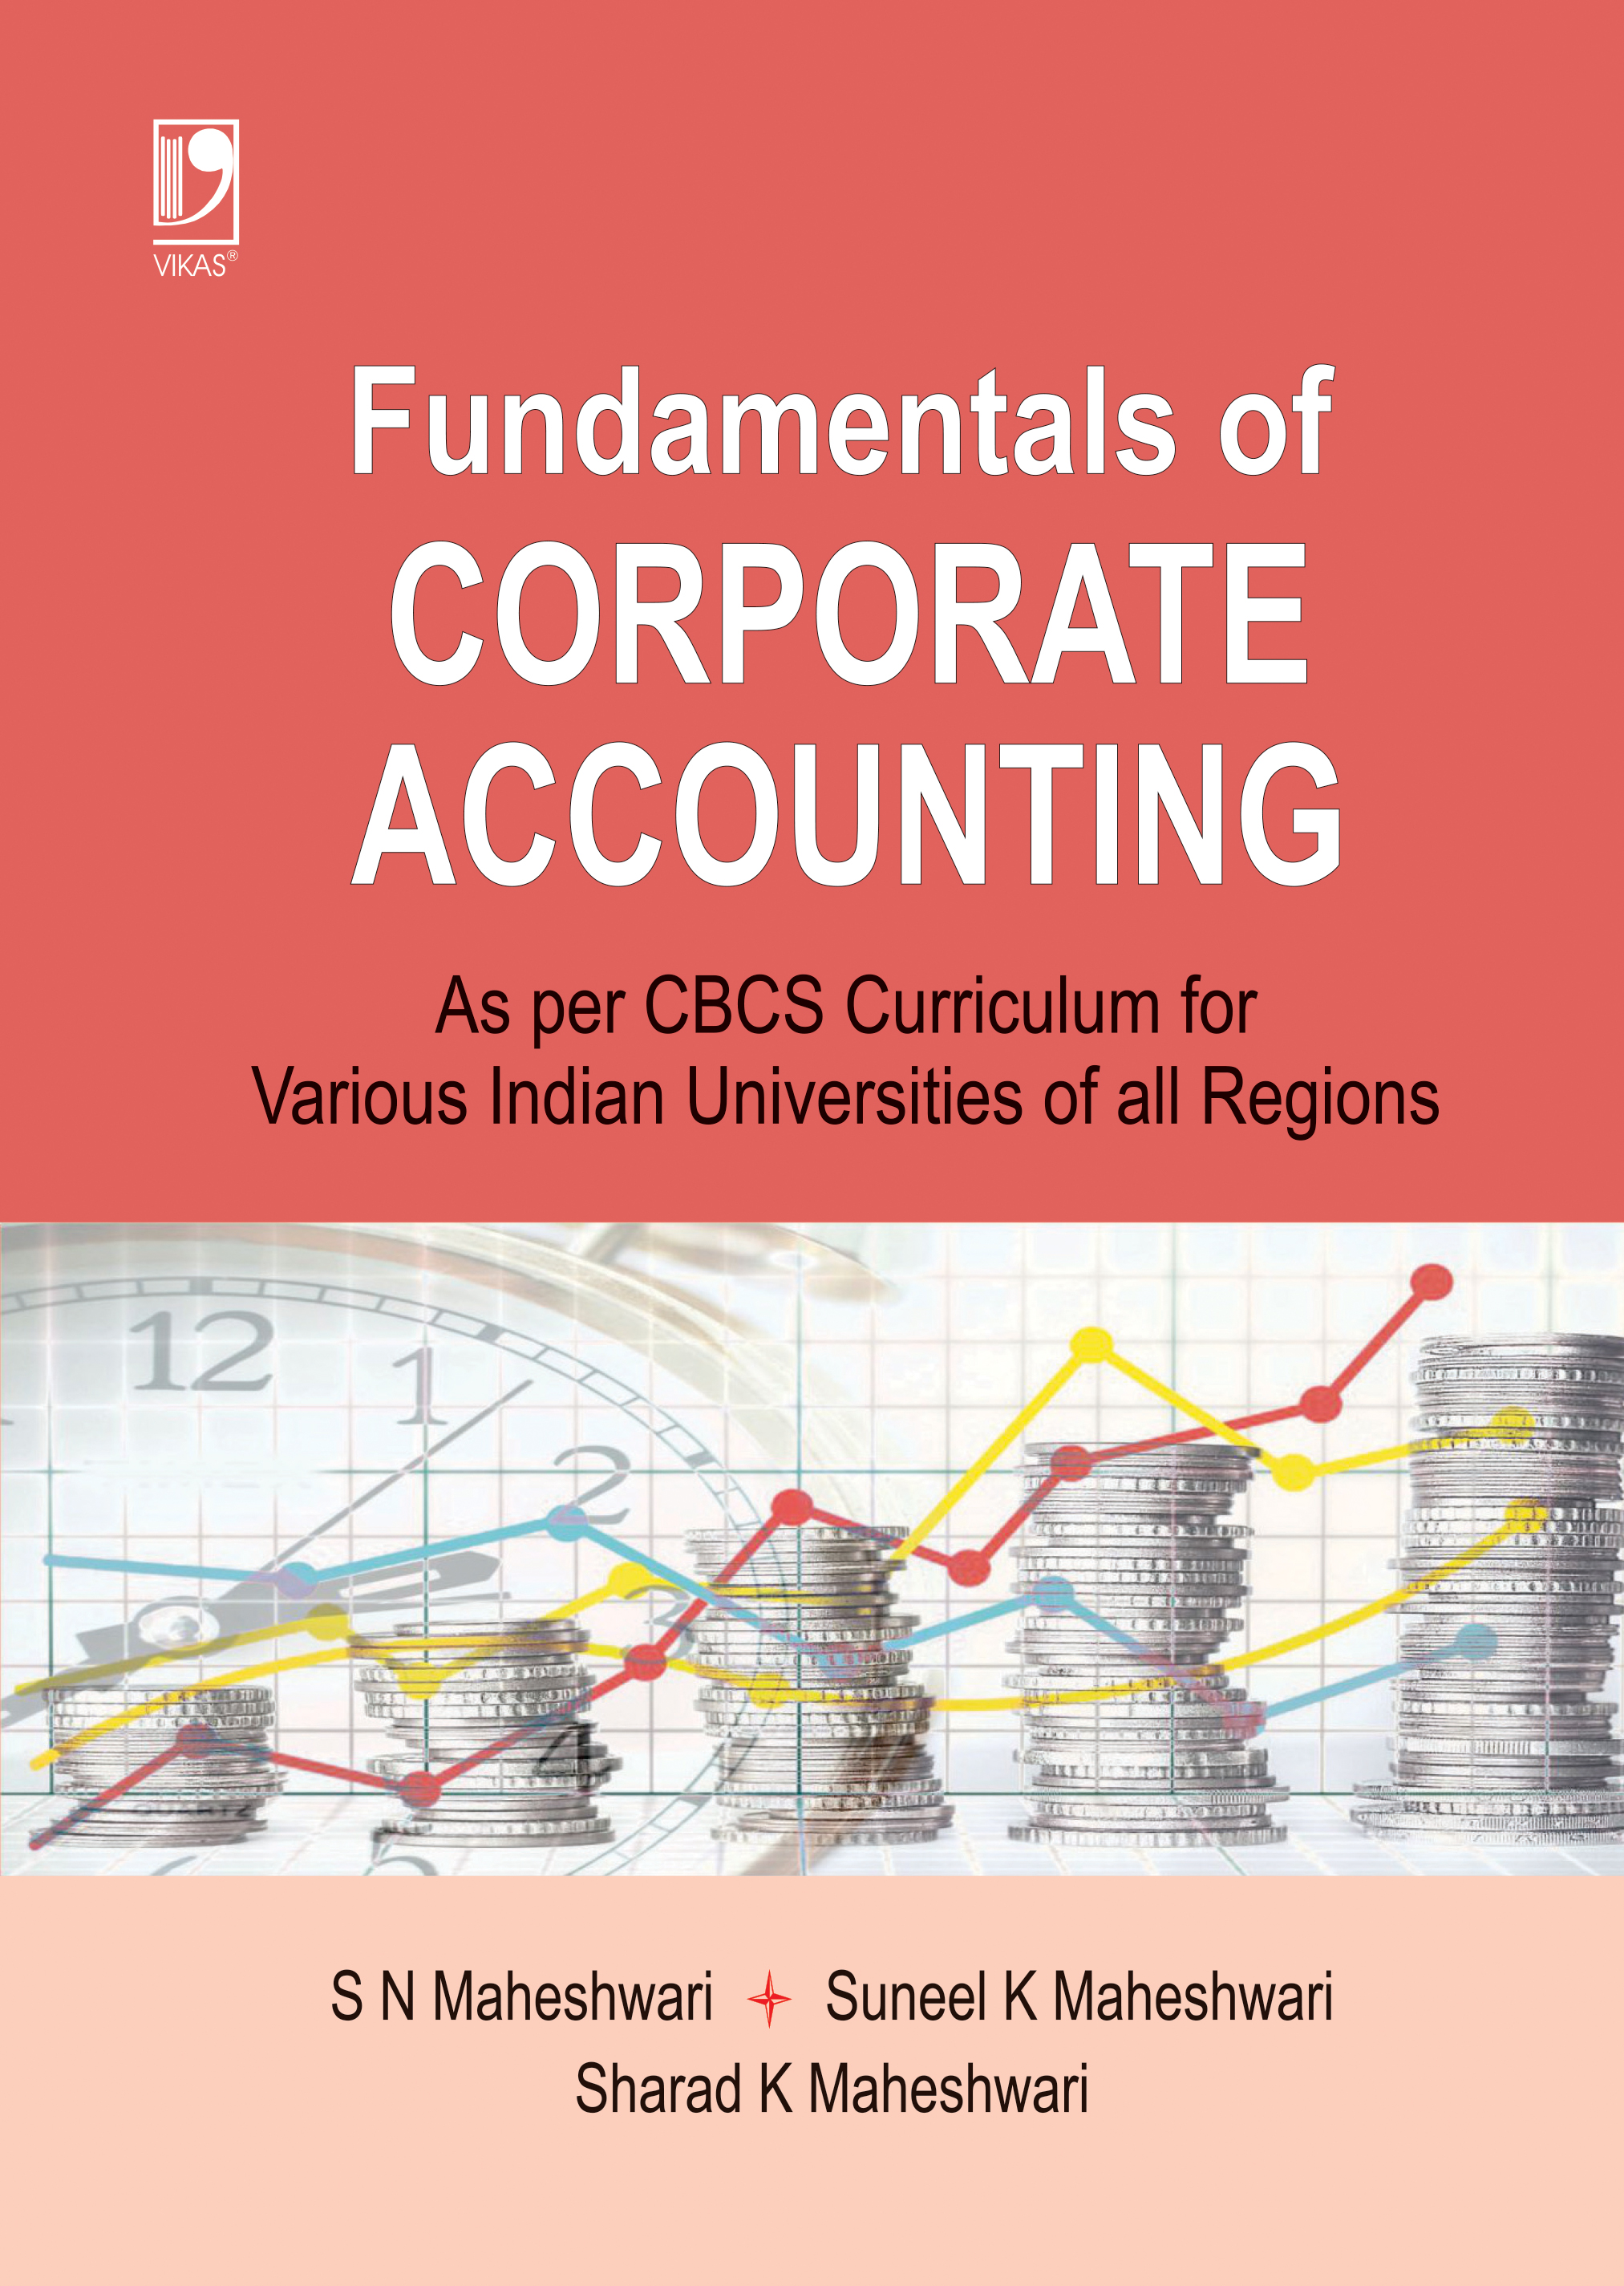 Fundamentals of Corporate Accounting (As per CBCS) by  Dr S N Maheshwari